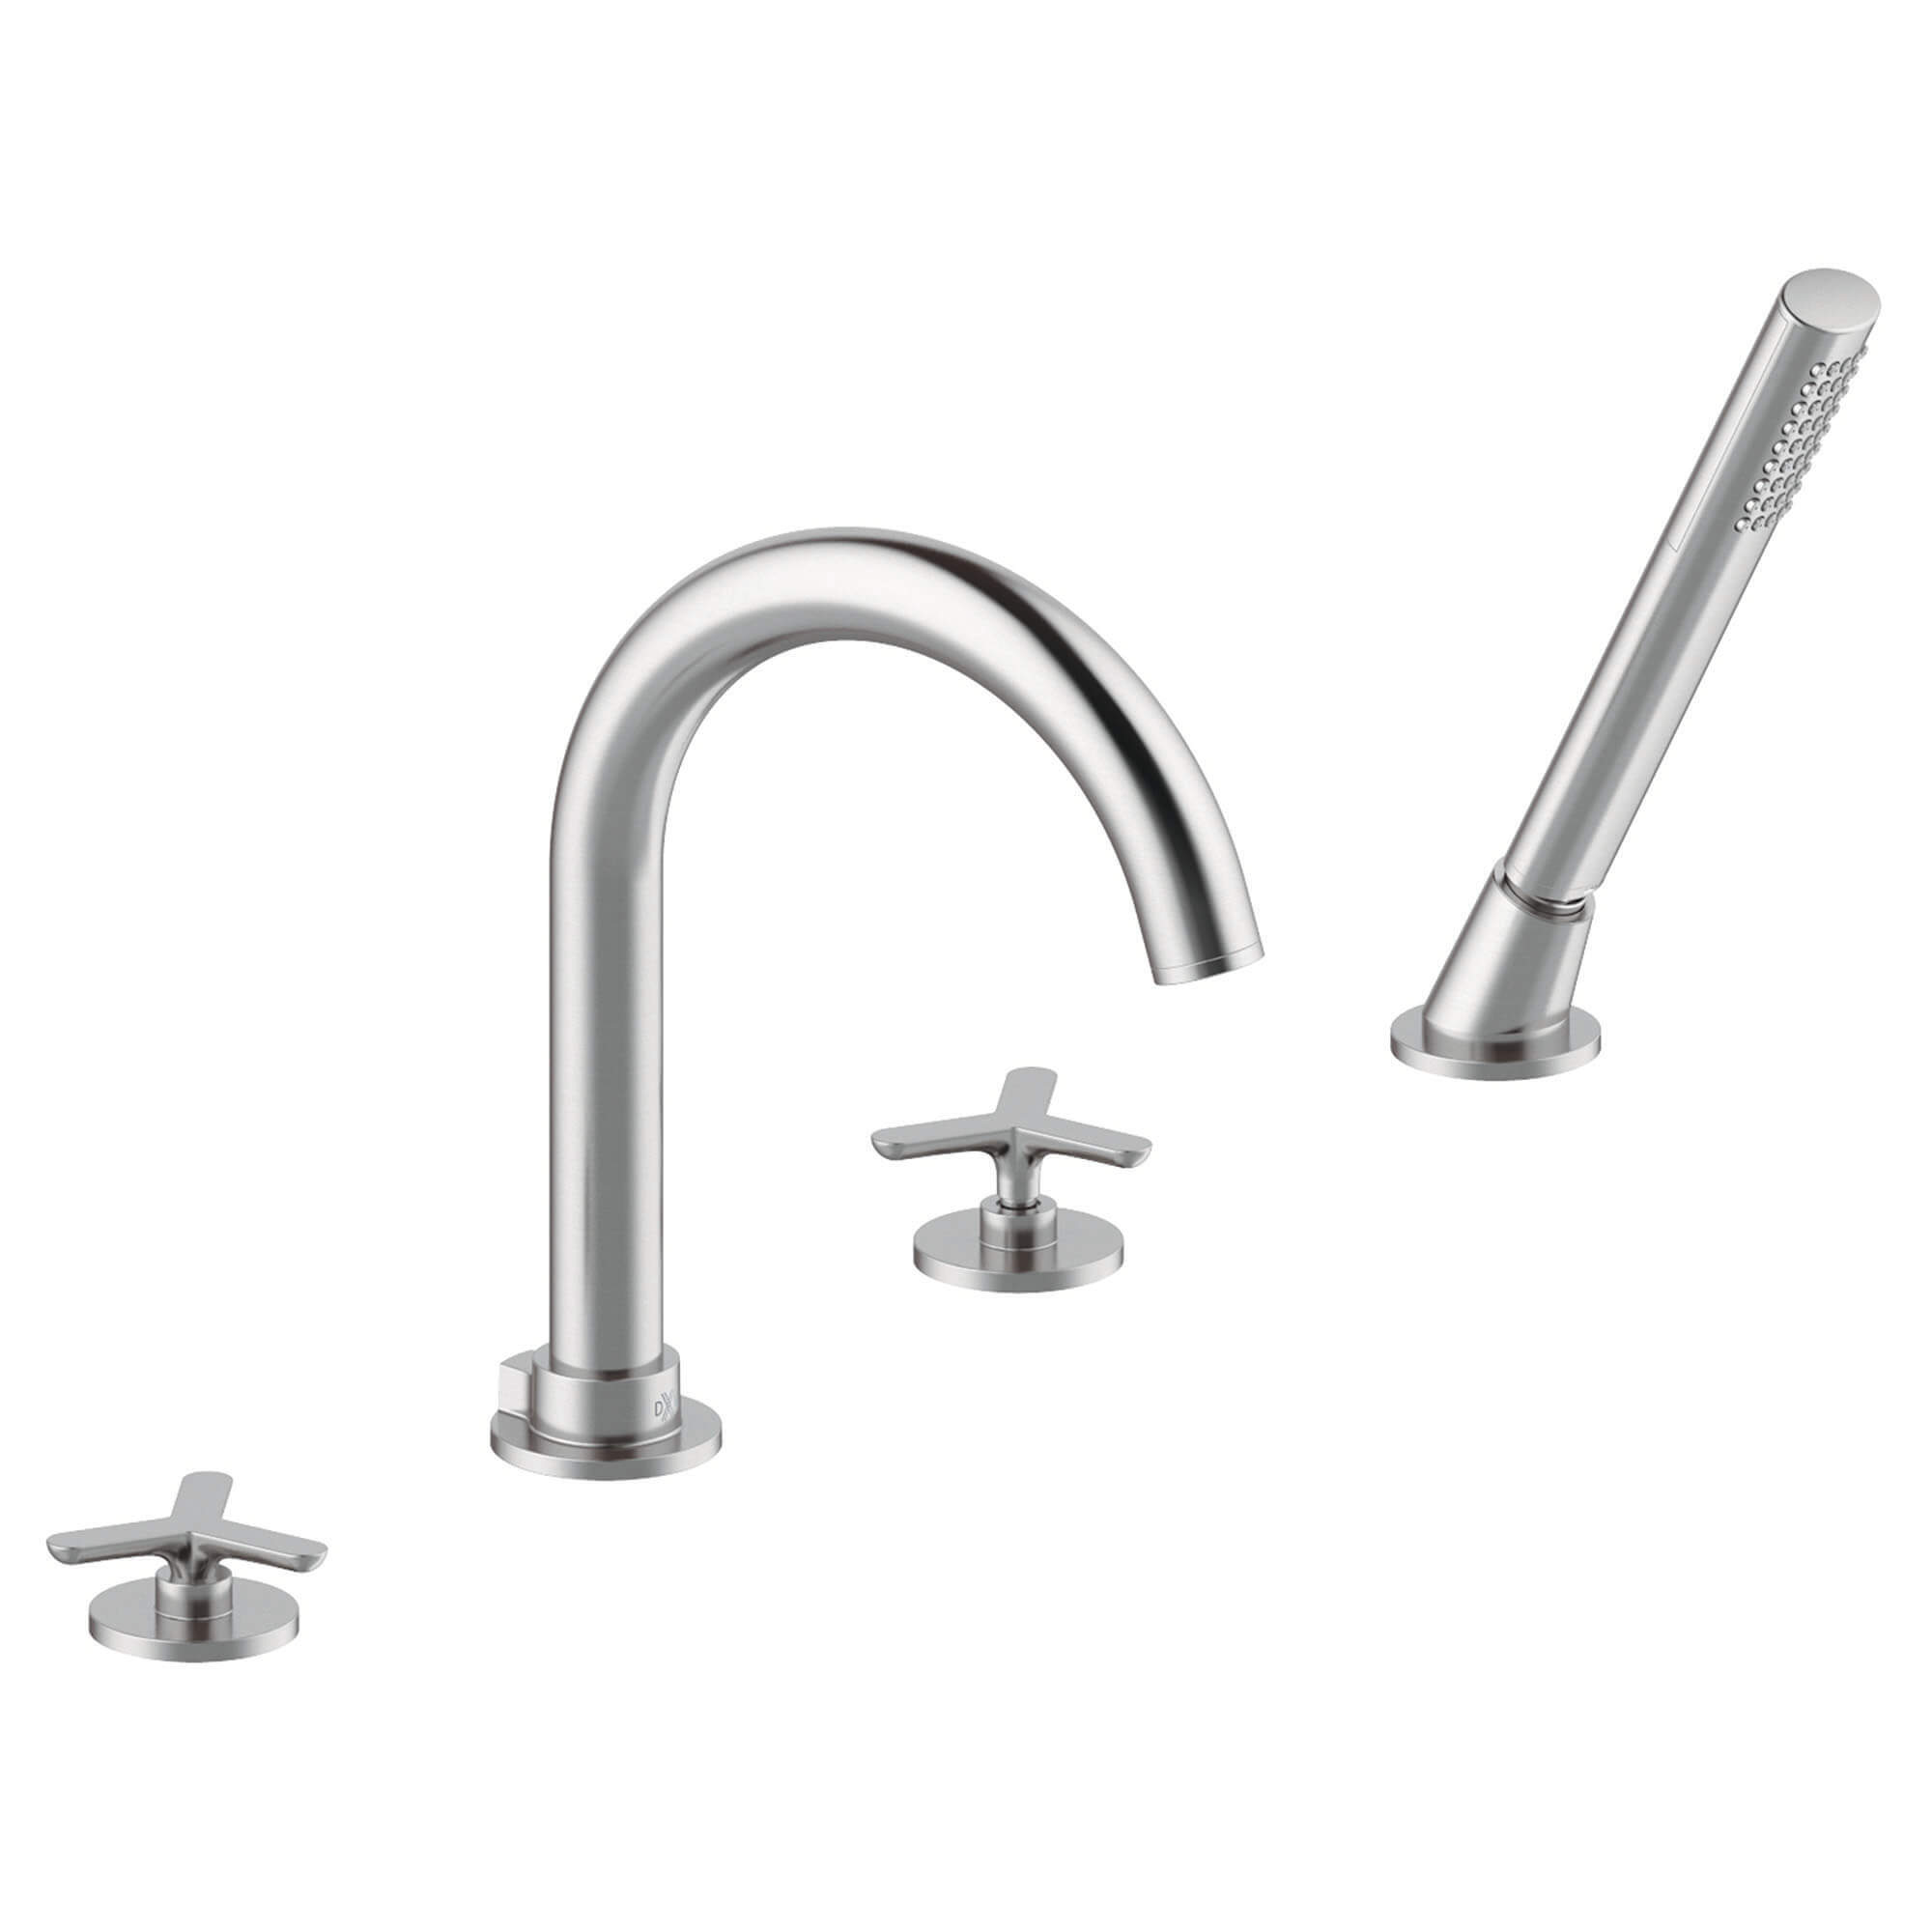 Percy Deck Mount Tub Filler with Hand Shower - Tri-Spoke Handles